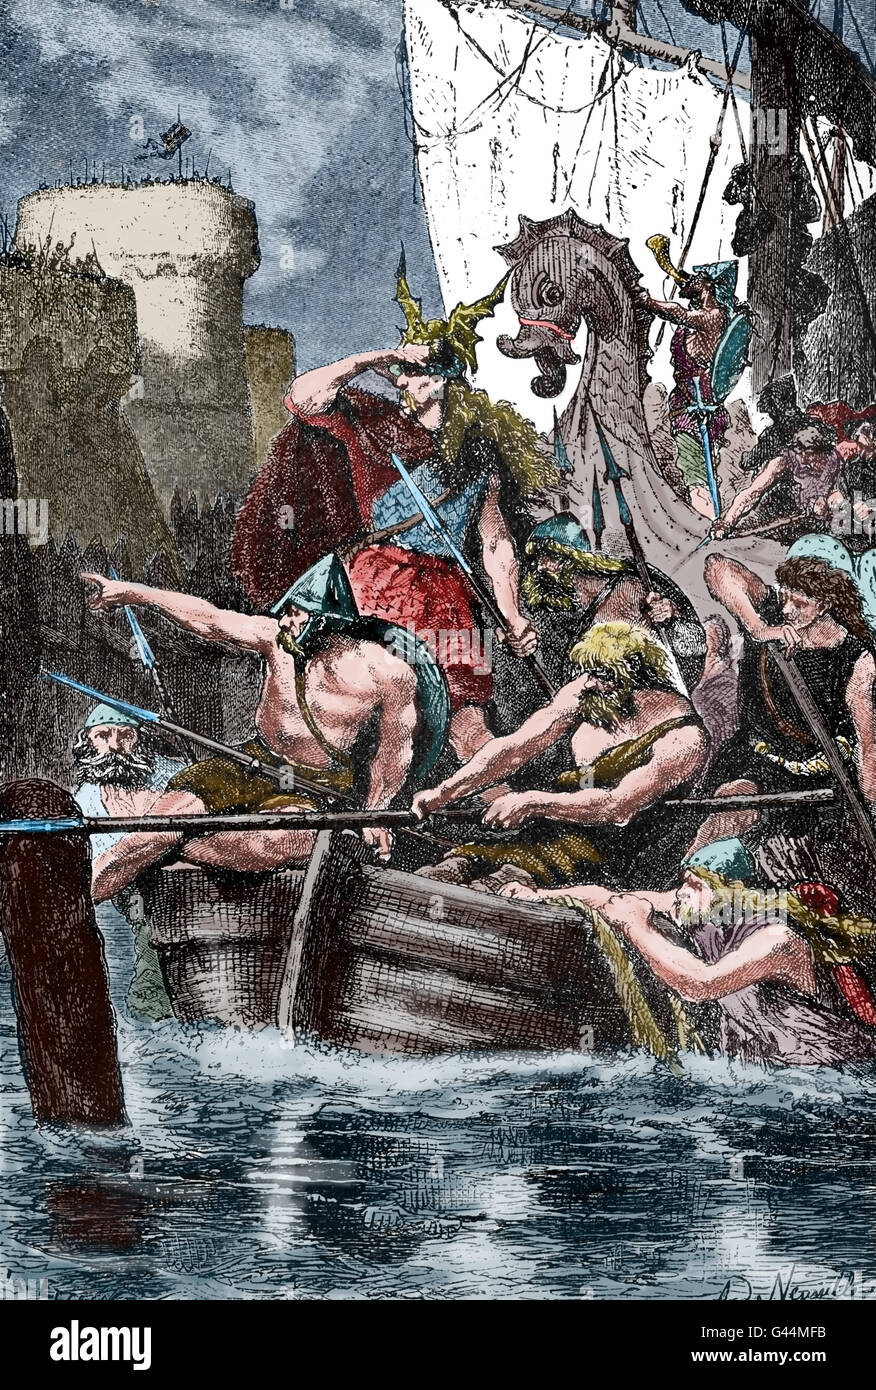 Vikings attacking the Mediterranean coast. 10th century. Engraving. Color. - Stock Image